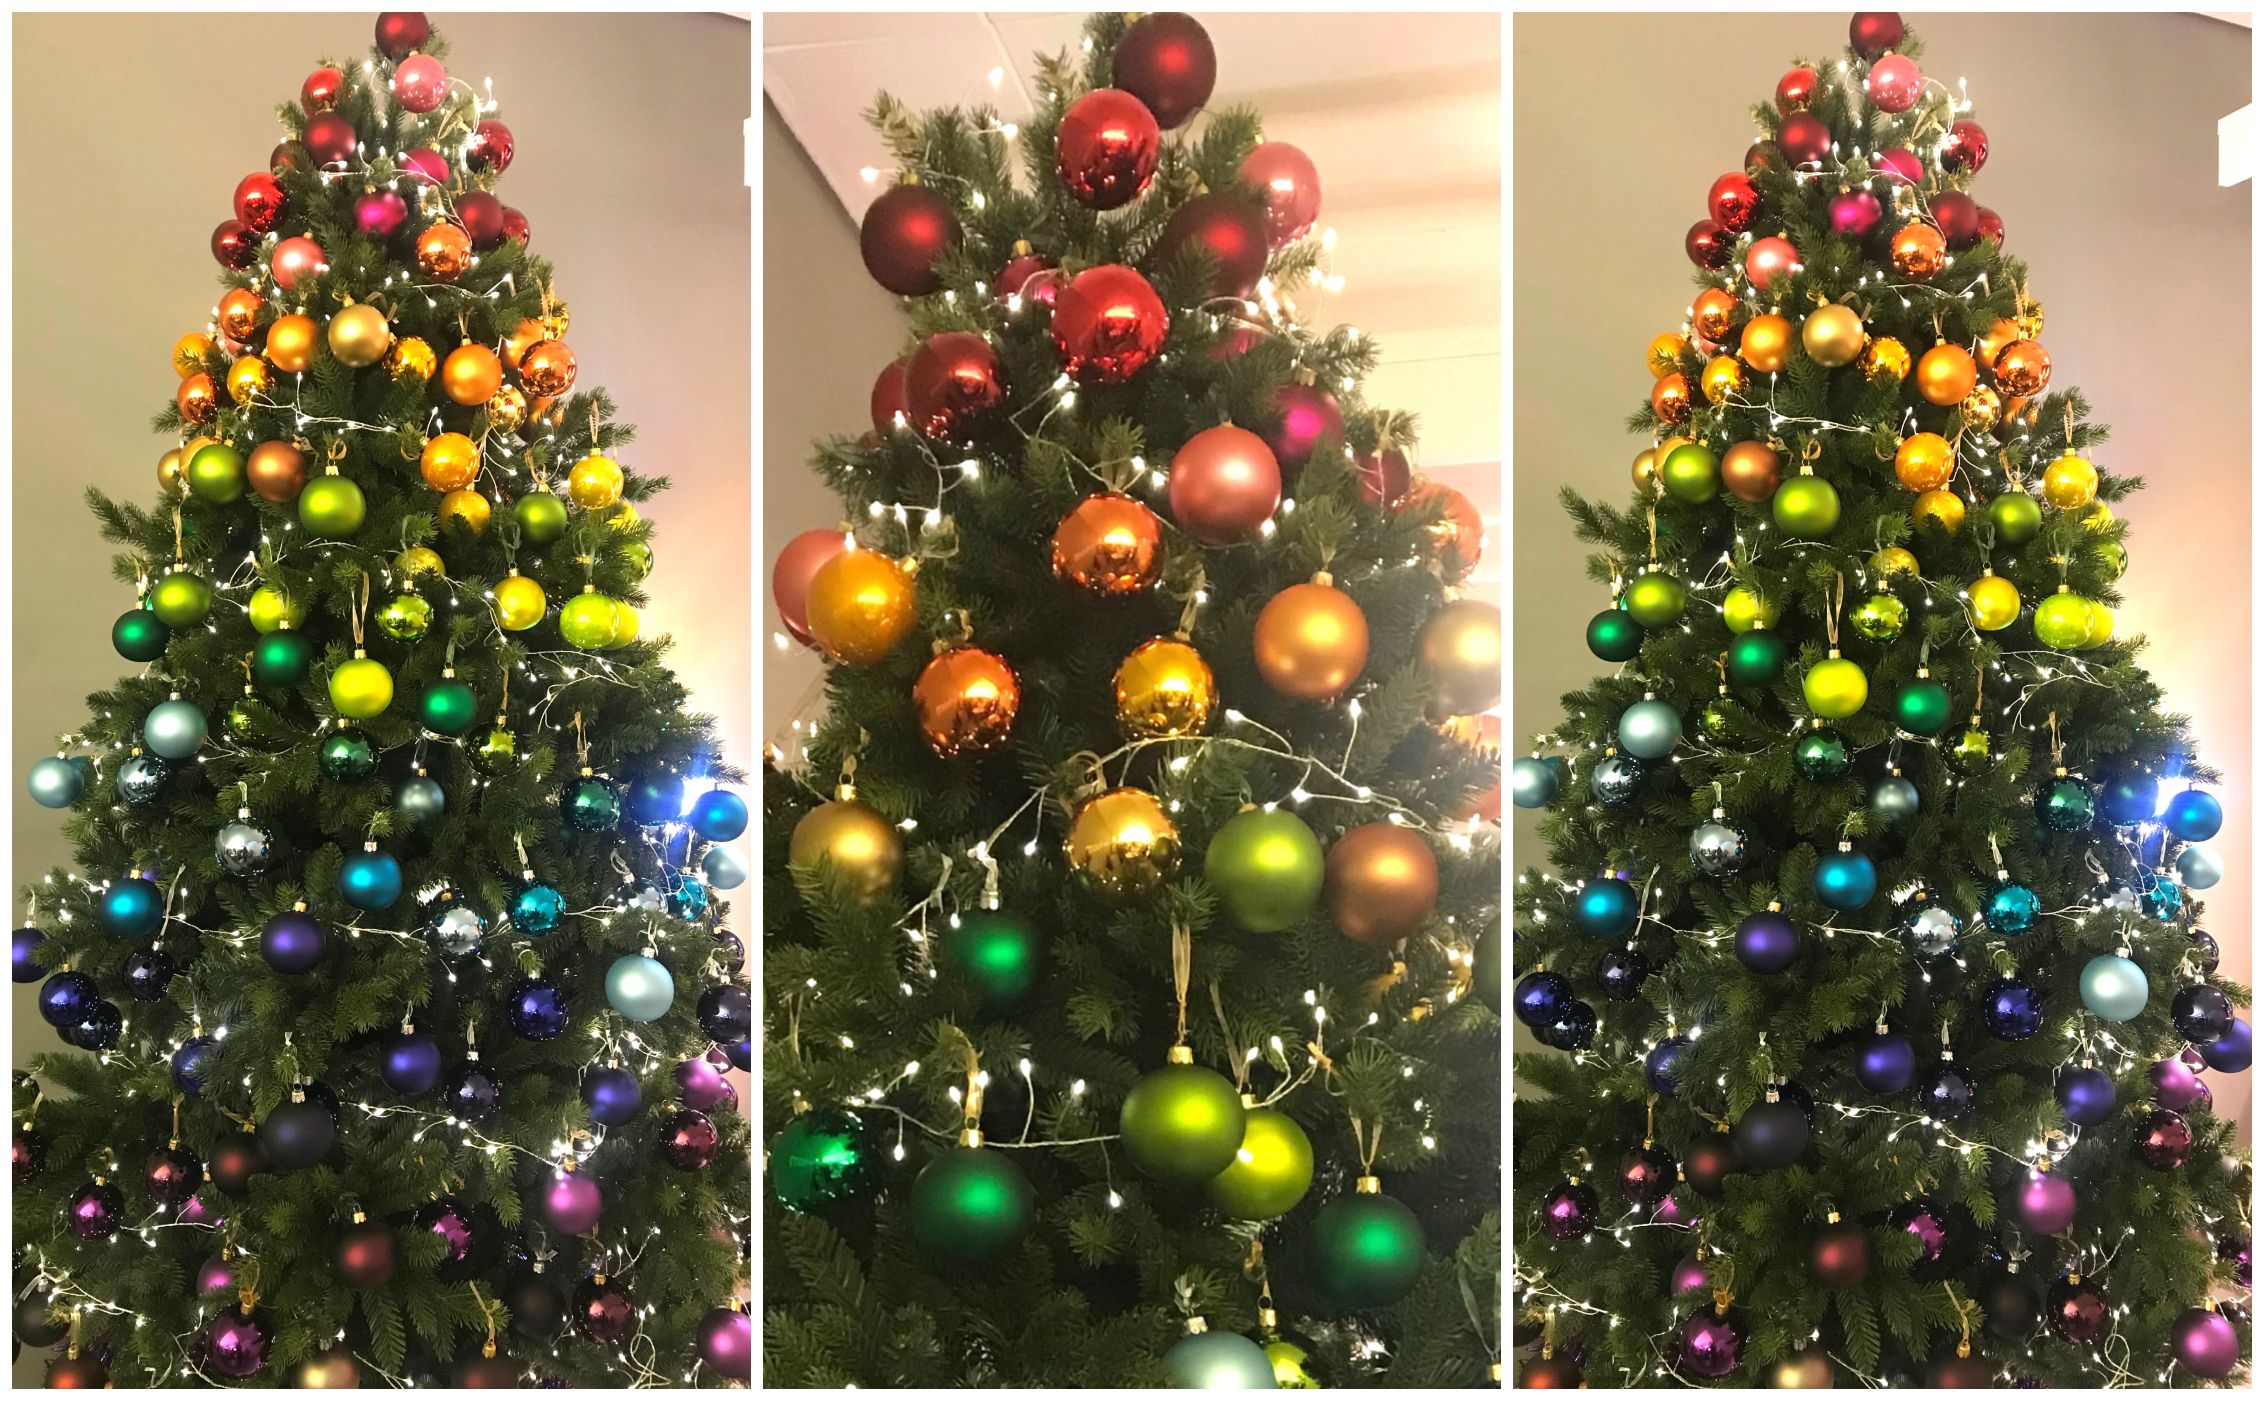 rainbow christmas trees will be biggest christmas 2018 trend says john lewis - Narwhal Christmas Decoration